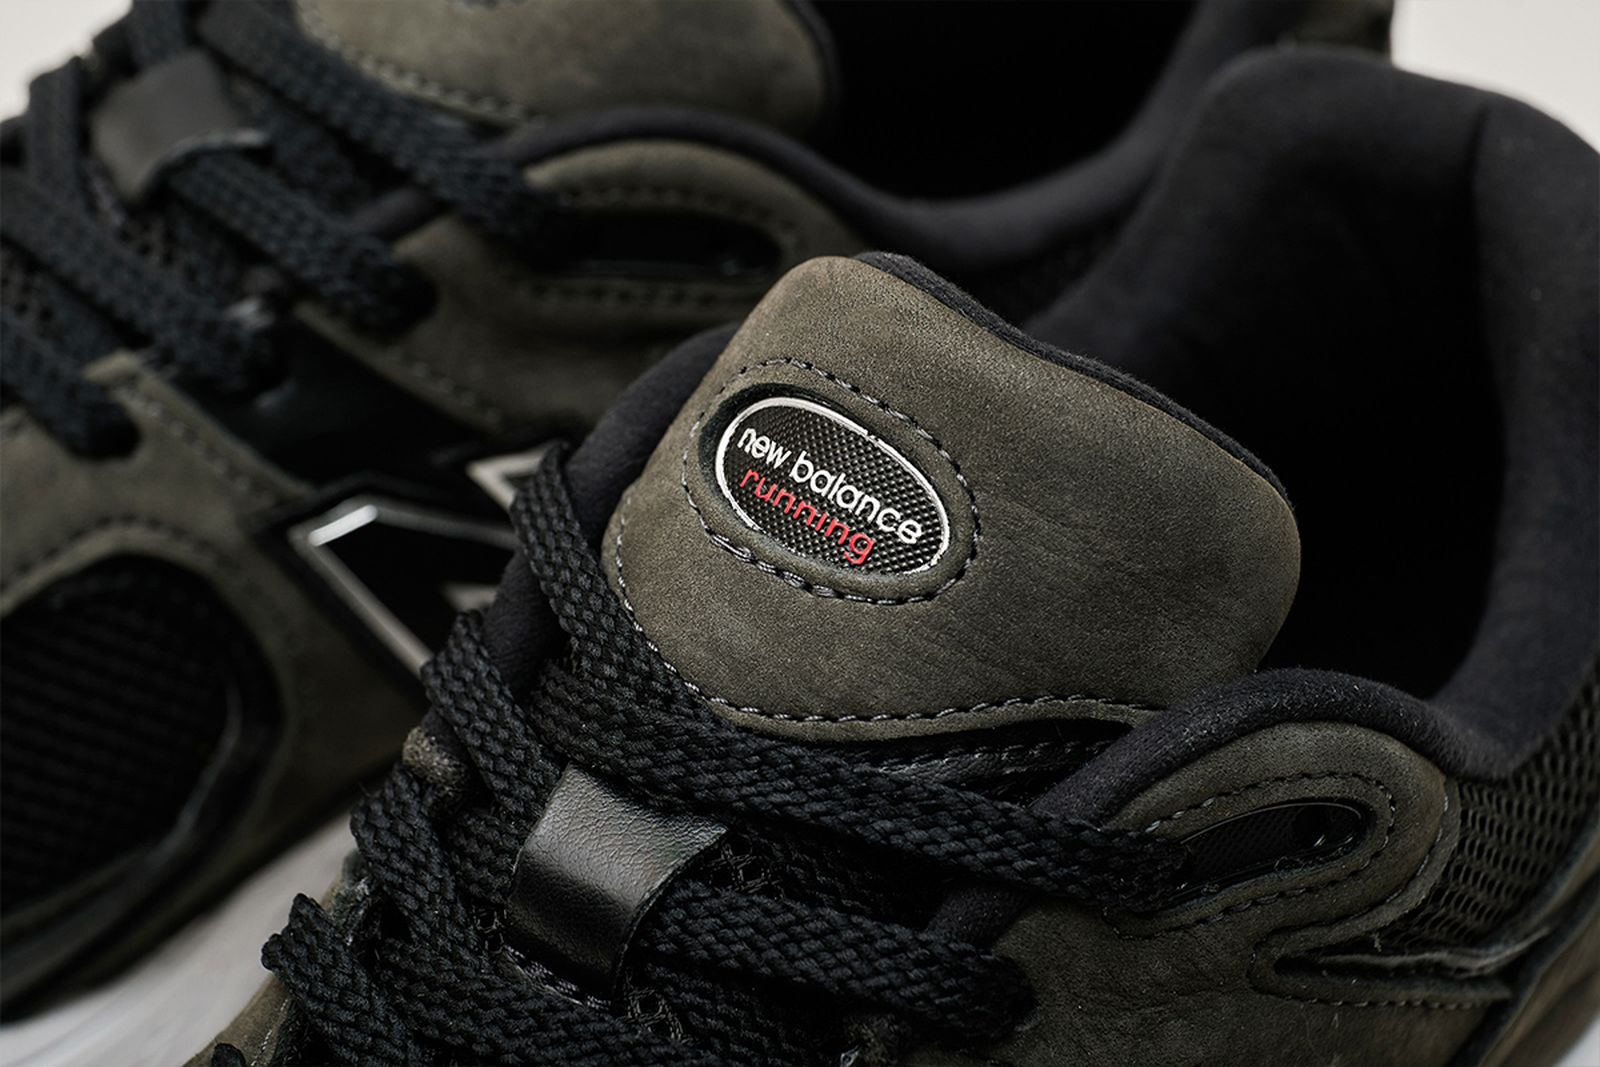 new-balance-2002r-release-date-price-06